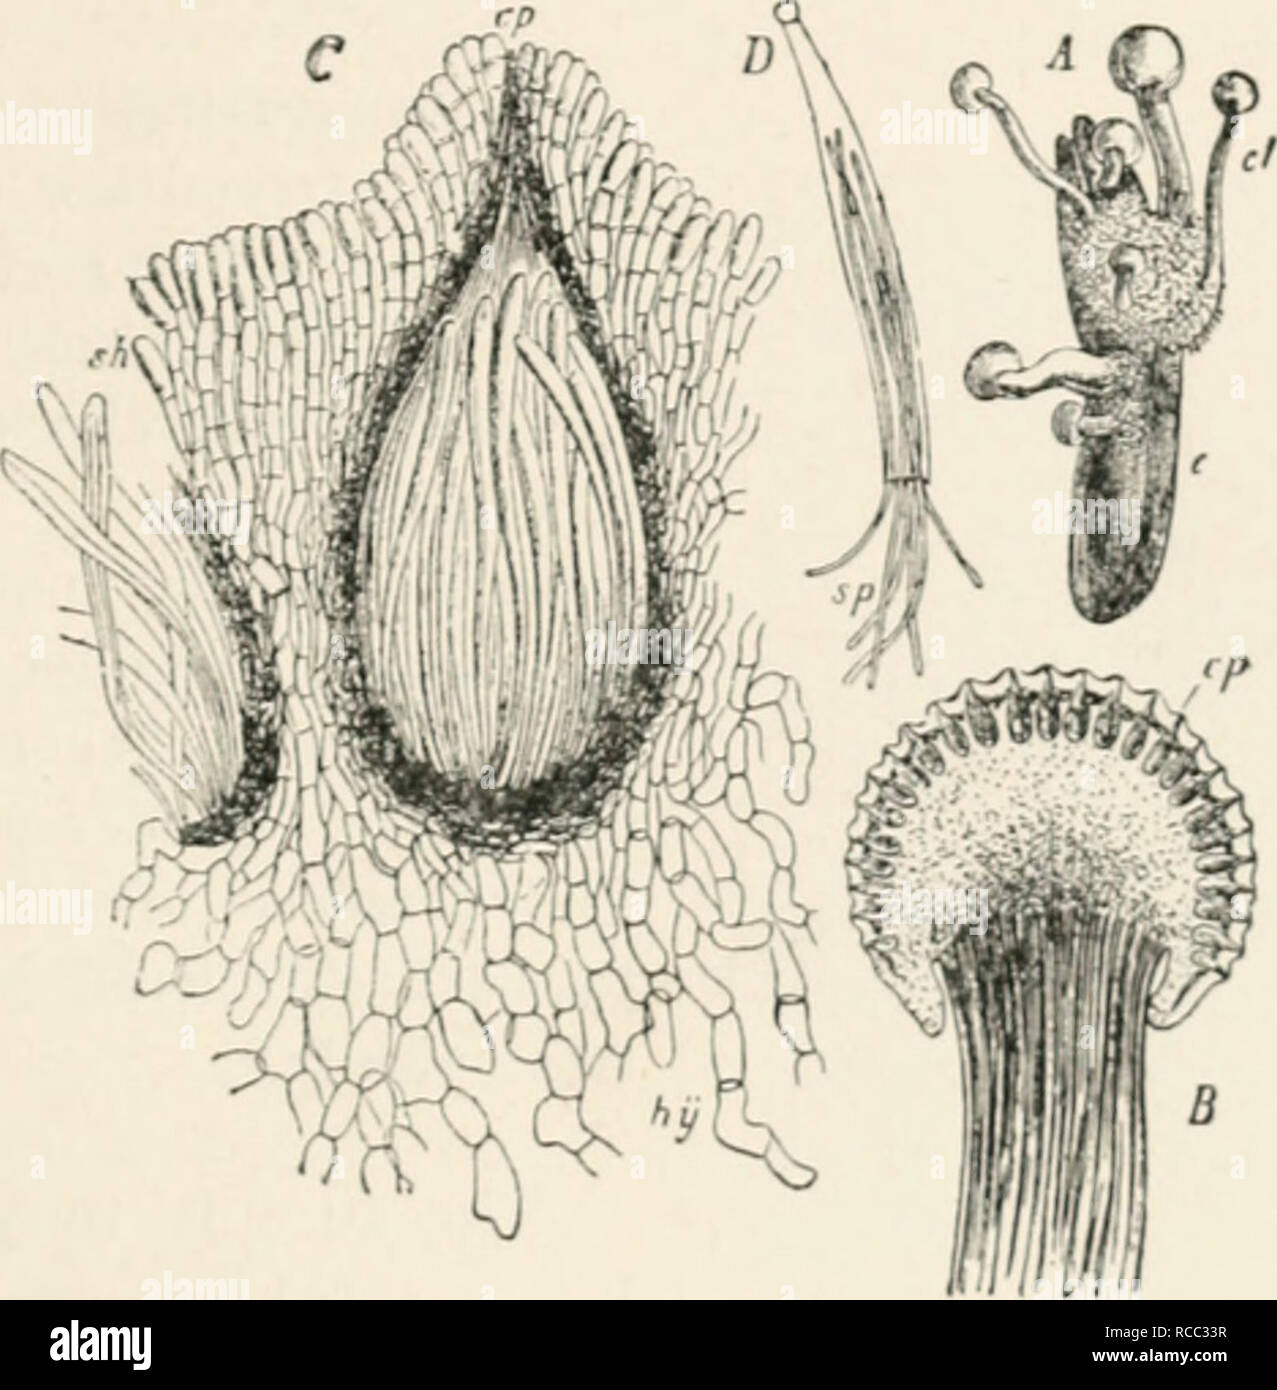 """. Diseases of plants induced by cryptogamuc parasites; introduction to the study of pathogenic fungi, slime-fungi, bacteria, and algae. English ed. by William G. Smith. Plant diseases; Parasitic plants. CLAVICEPS. 193 conidiophores. A very sweet fluid, the so-called """" houey-dew,"""" is separated from the sphacelia; this attracts insects, which carry the conidia to other flowers. Since the conidia are capable of immediate germination, and give rise to a mycelium which penetrates through the outer coat of the ovary, the disease can be quickly disseminated during the flowering season of th - Stock Image"""